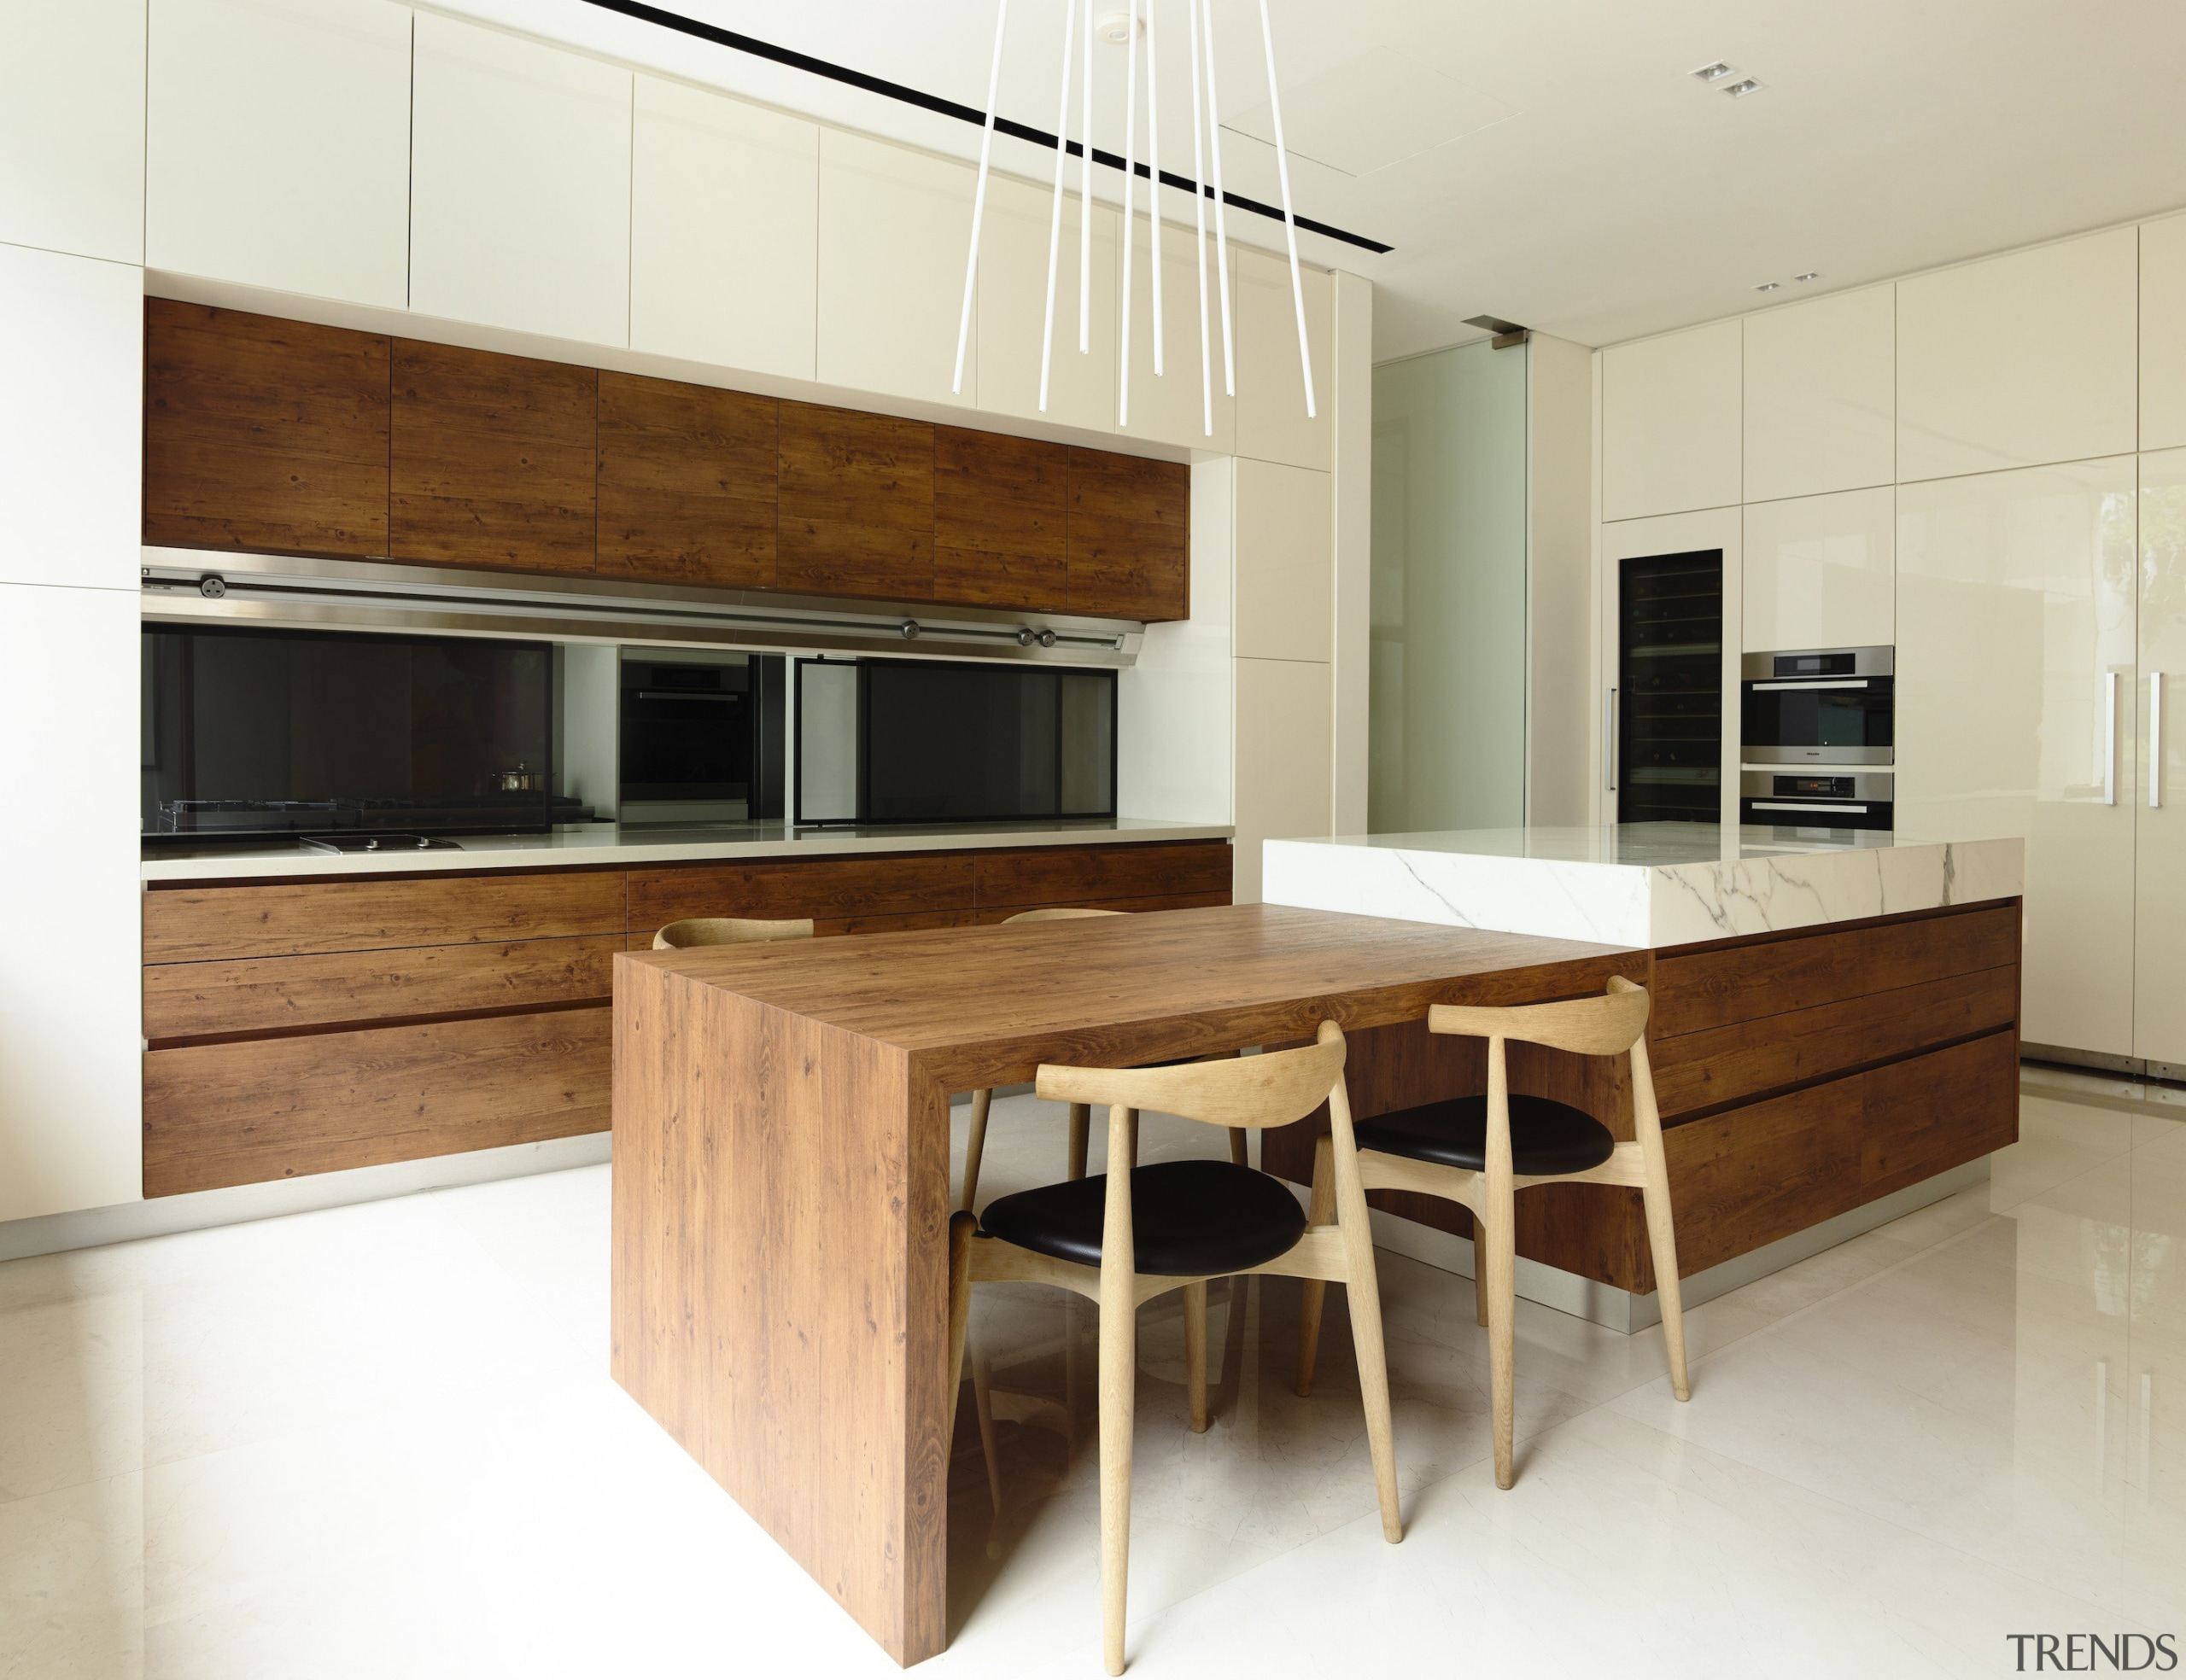 Stained pine wood cabinets make a bold textural cabinetry, countertop, cuisine classique, floor, flooring, furniture, hardwood, interior design, kitchen, real estate, table, wood, wood flooring, white